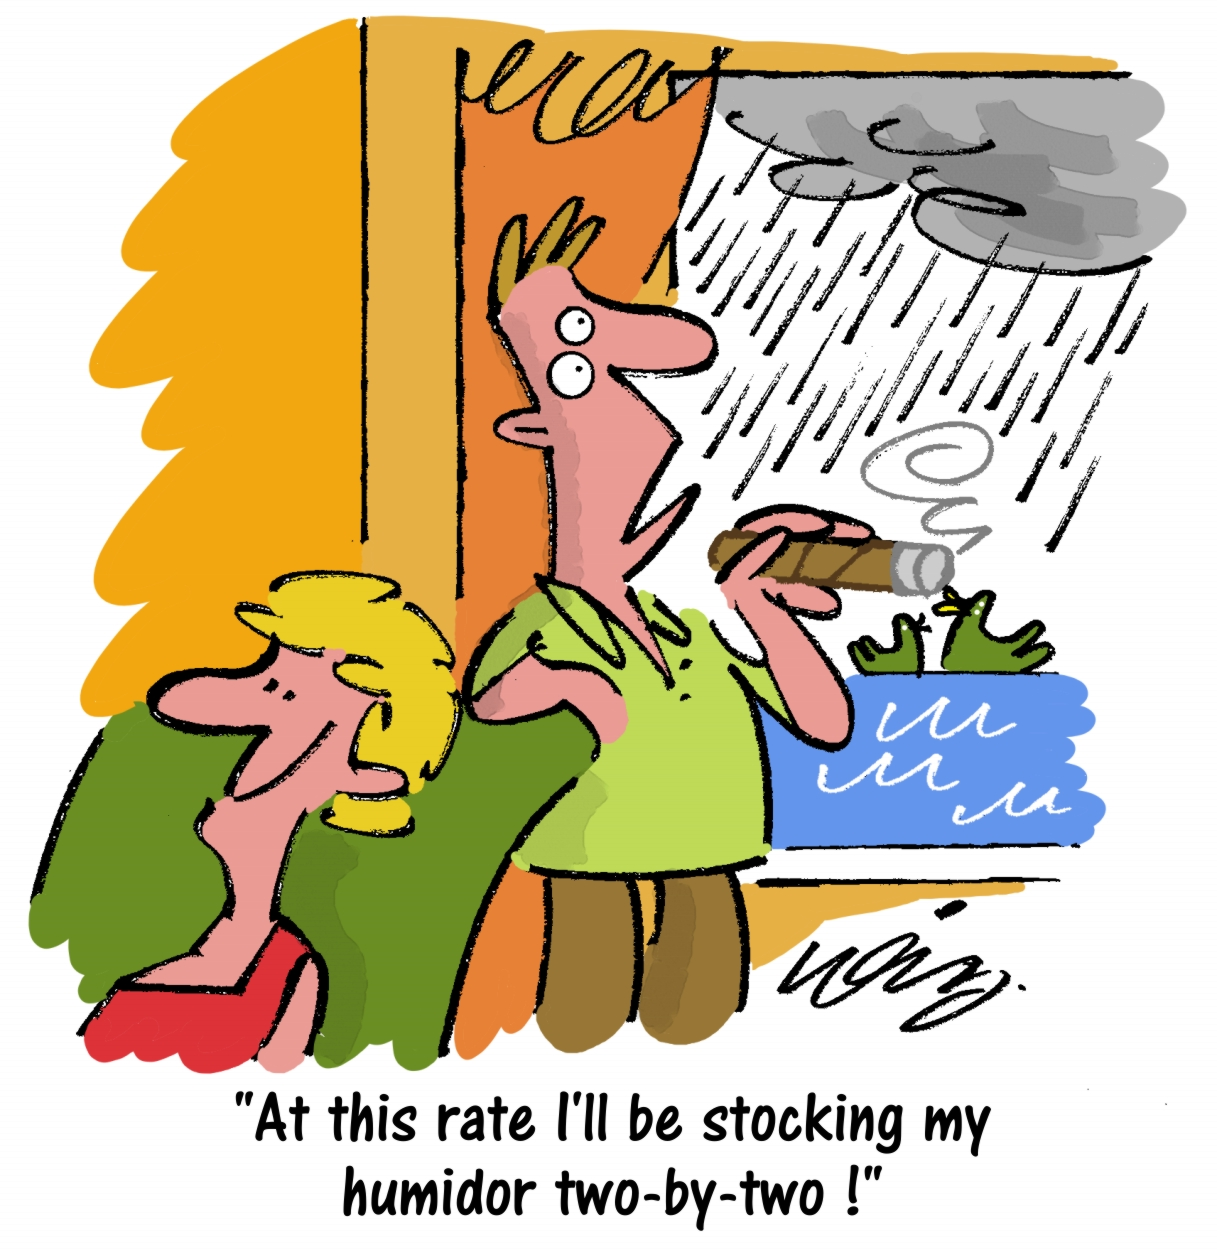 C.Gars Rain Weather Cigar Cartoon